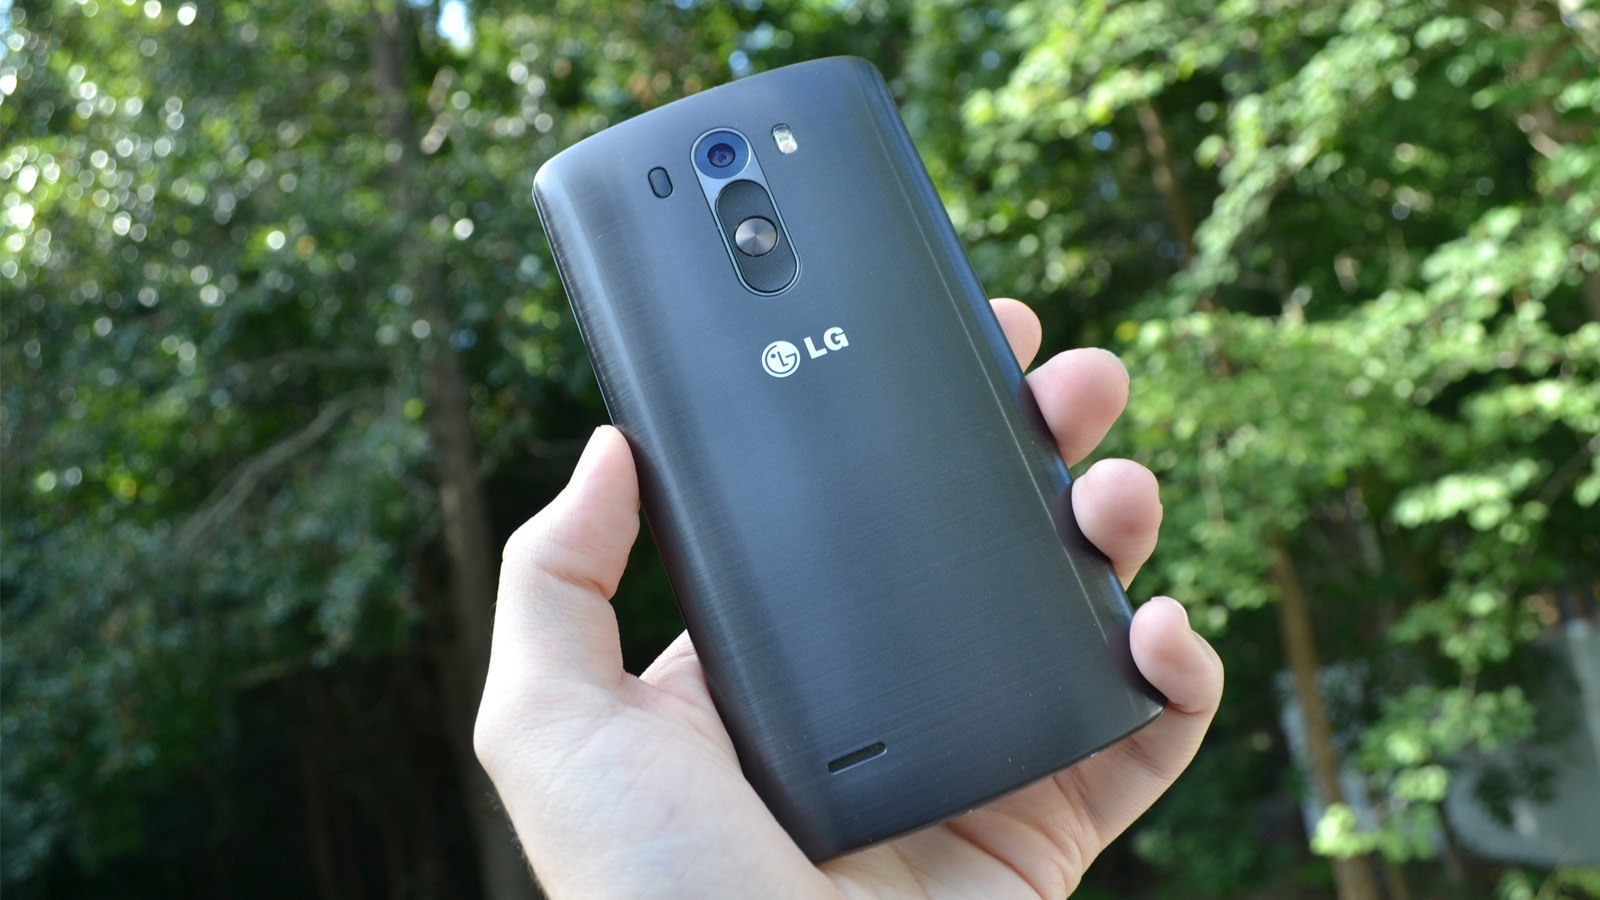 Testing: The LG G3 Android Smartphone - Tested